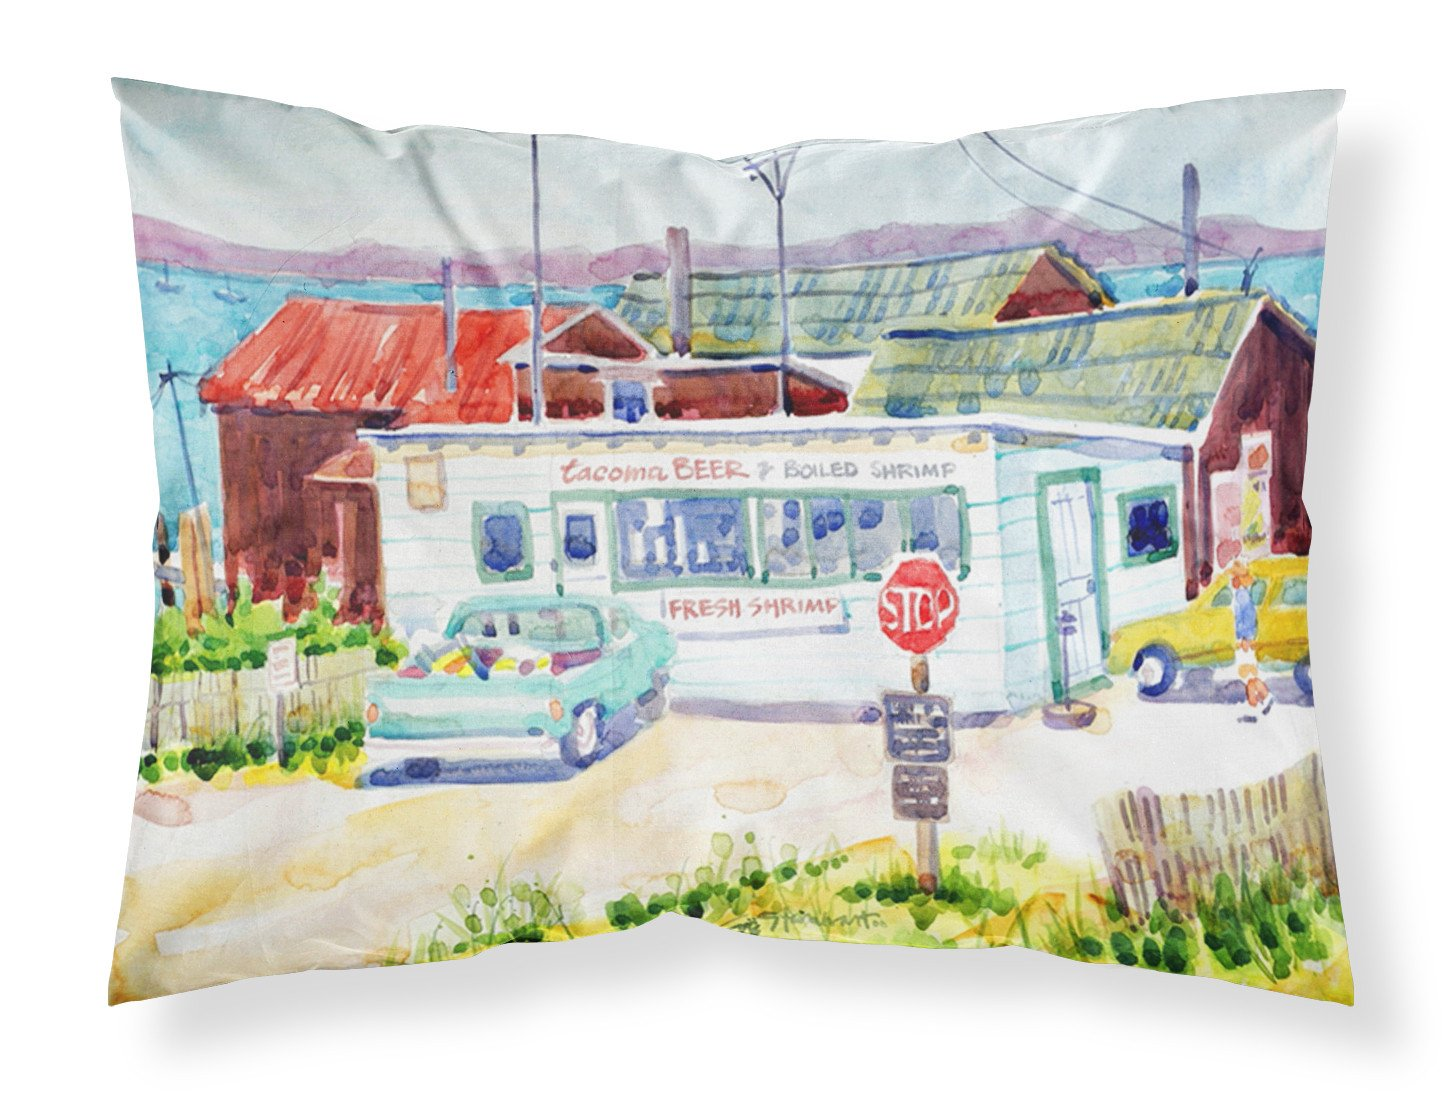 Buy this Seafood Shack for fresh shrimp Moisture wicking Fabric standard pillowcase